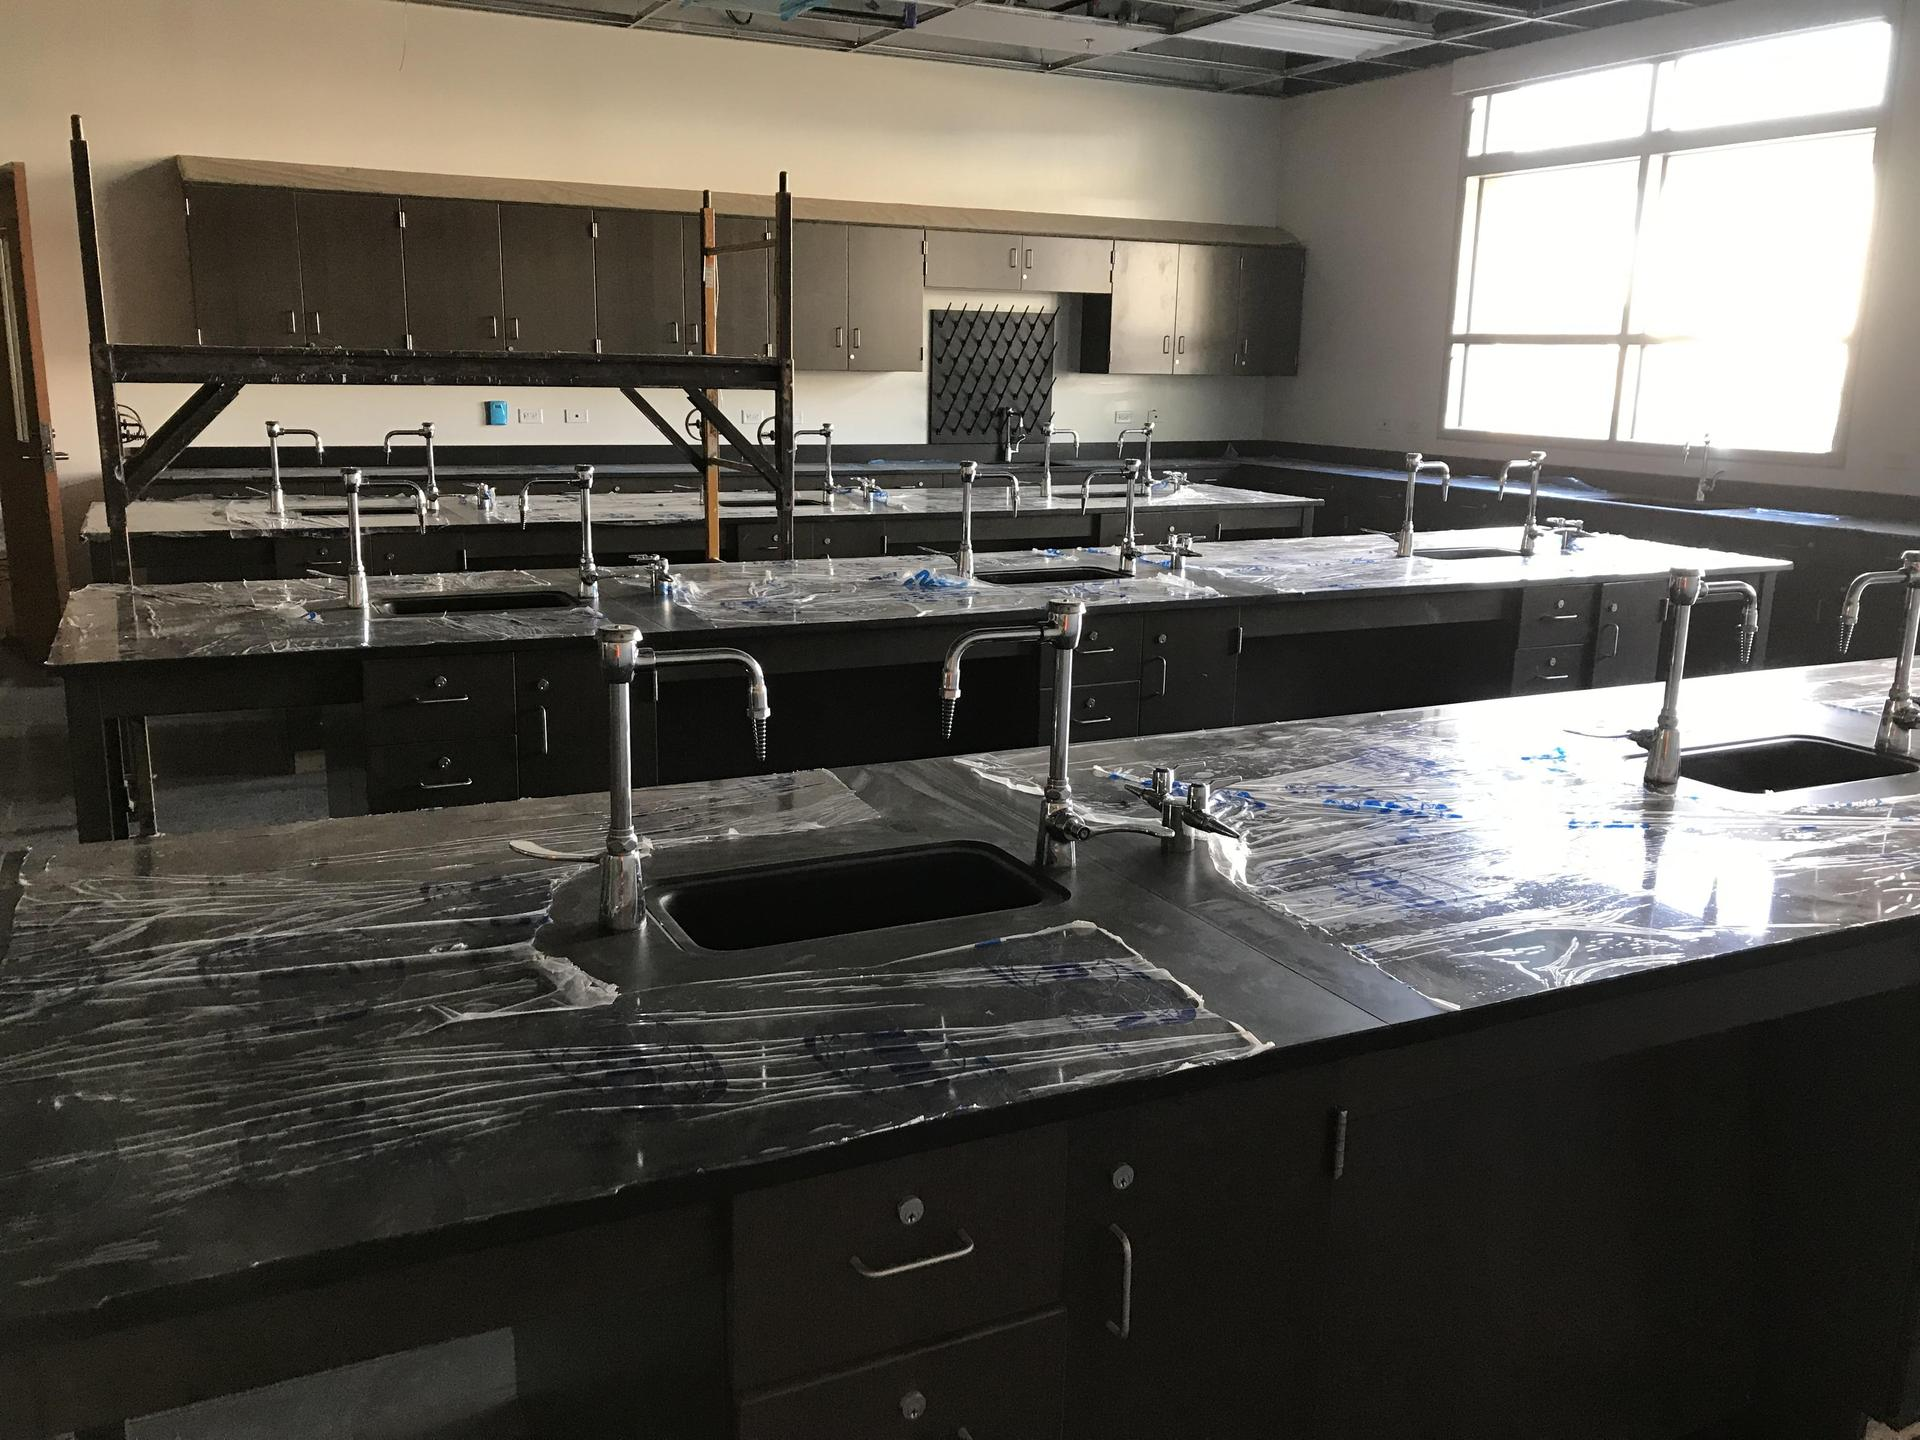 Interior image of progress on the Castaic High School science lab